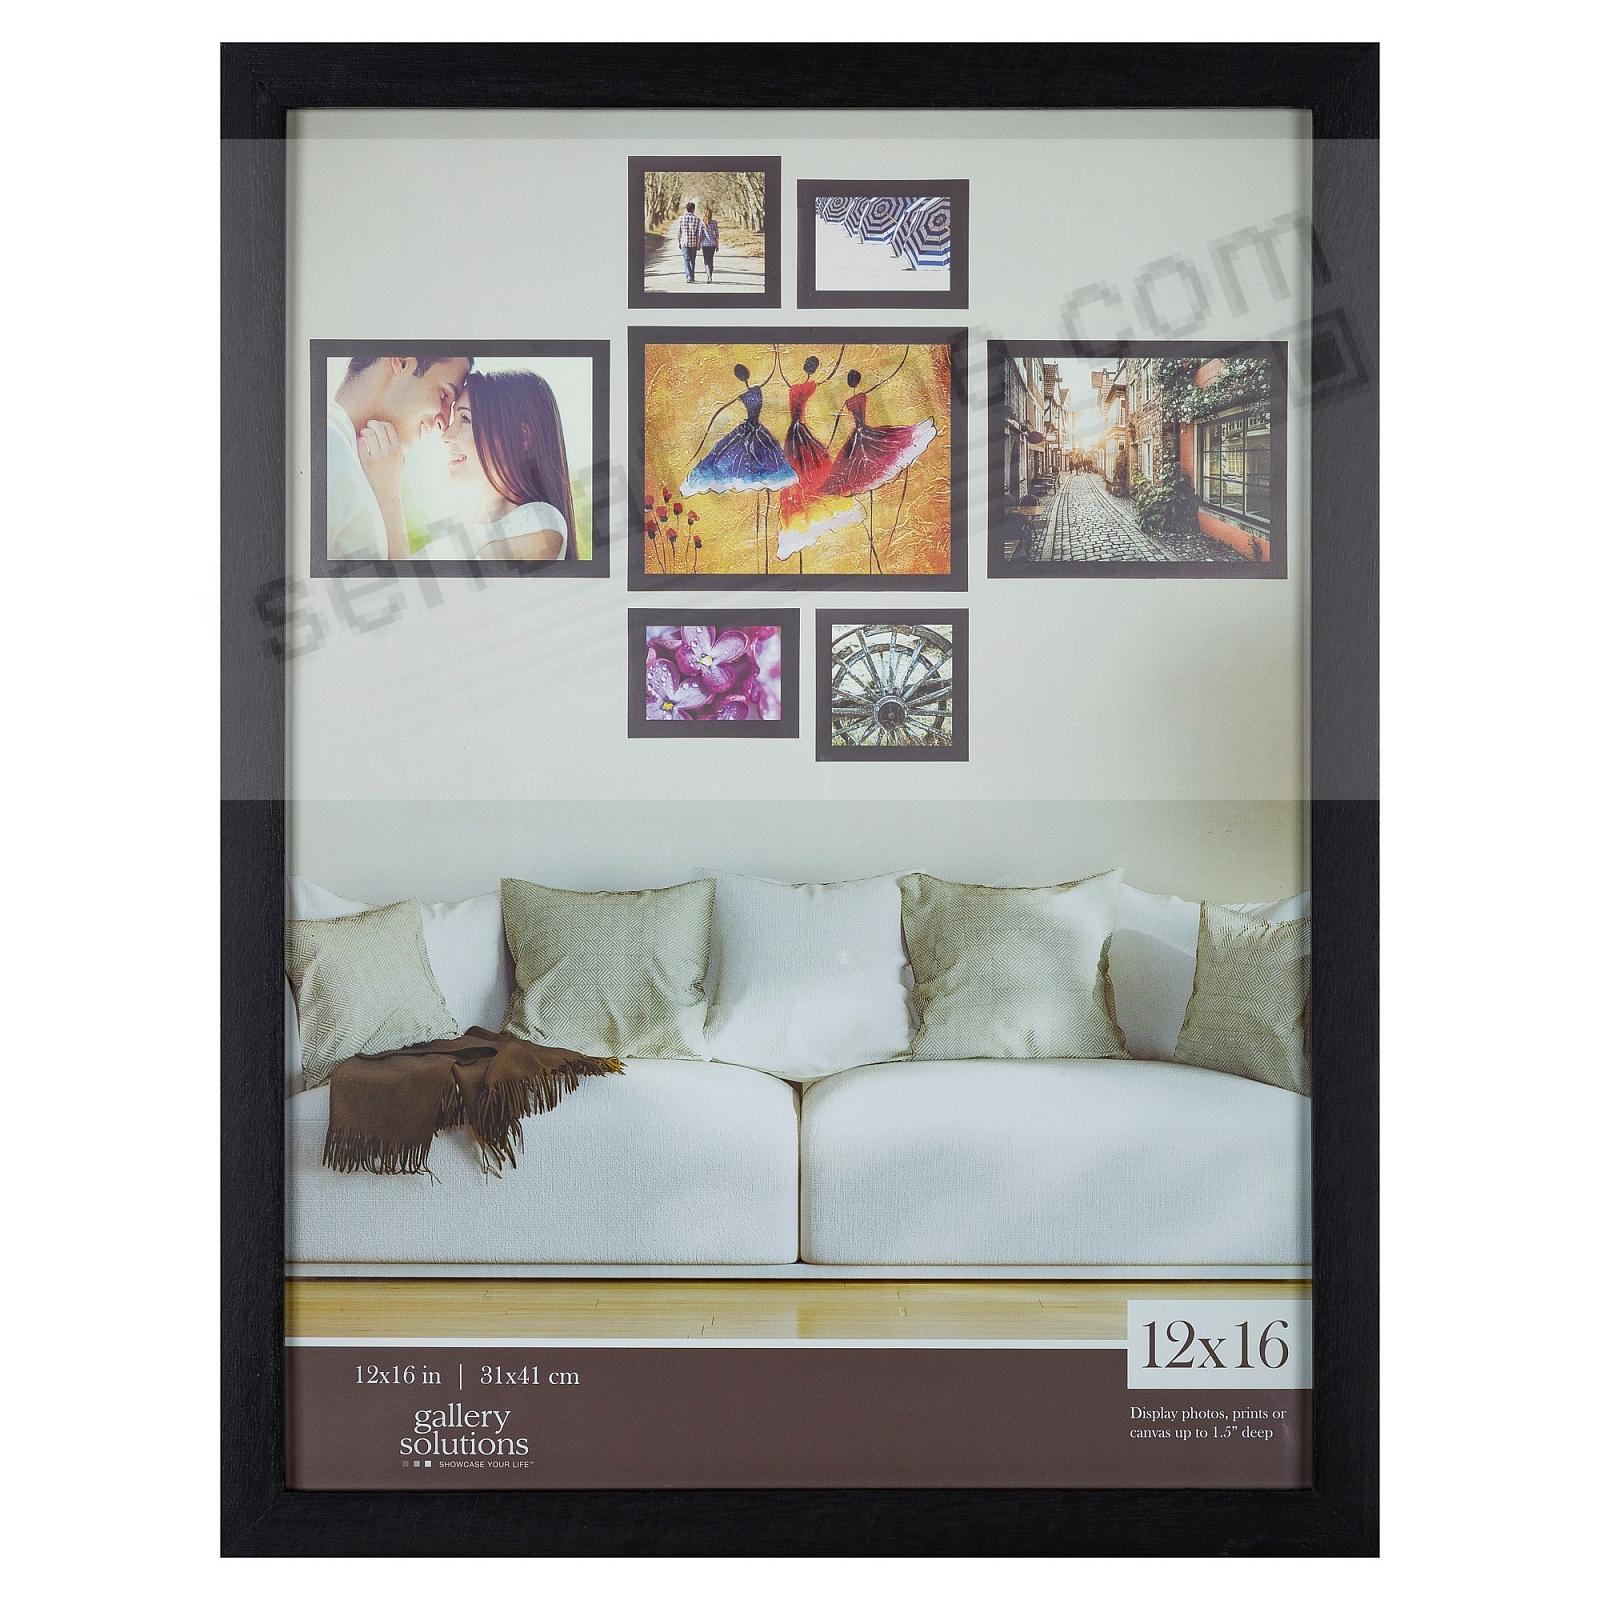 BLACK GALLERY 12x16 frame by Gallery Solutions®